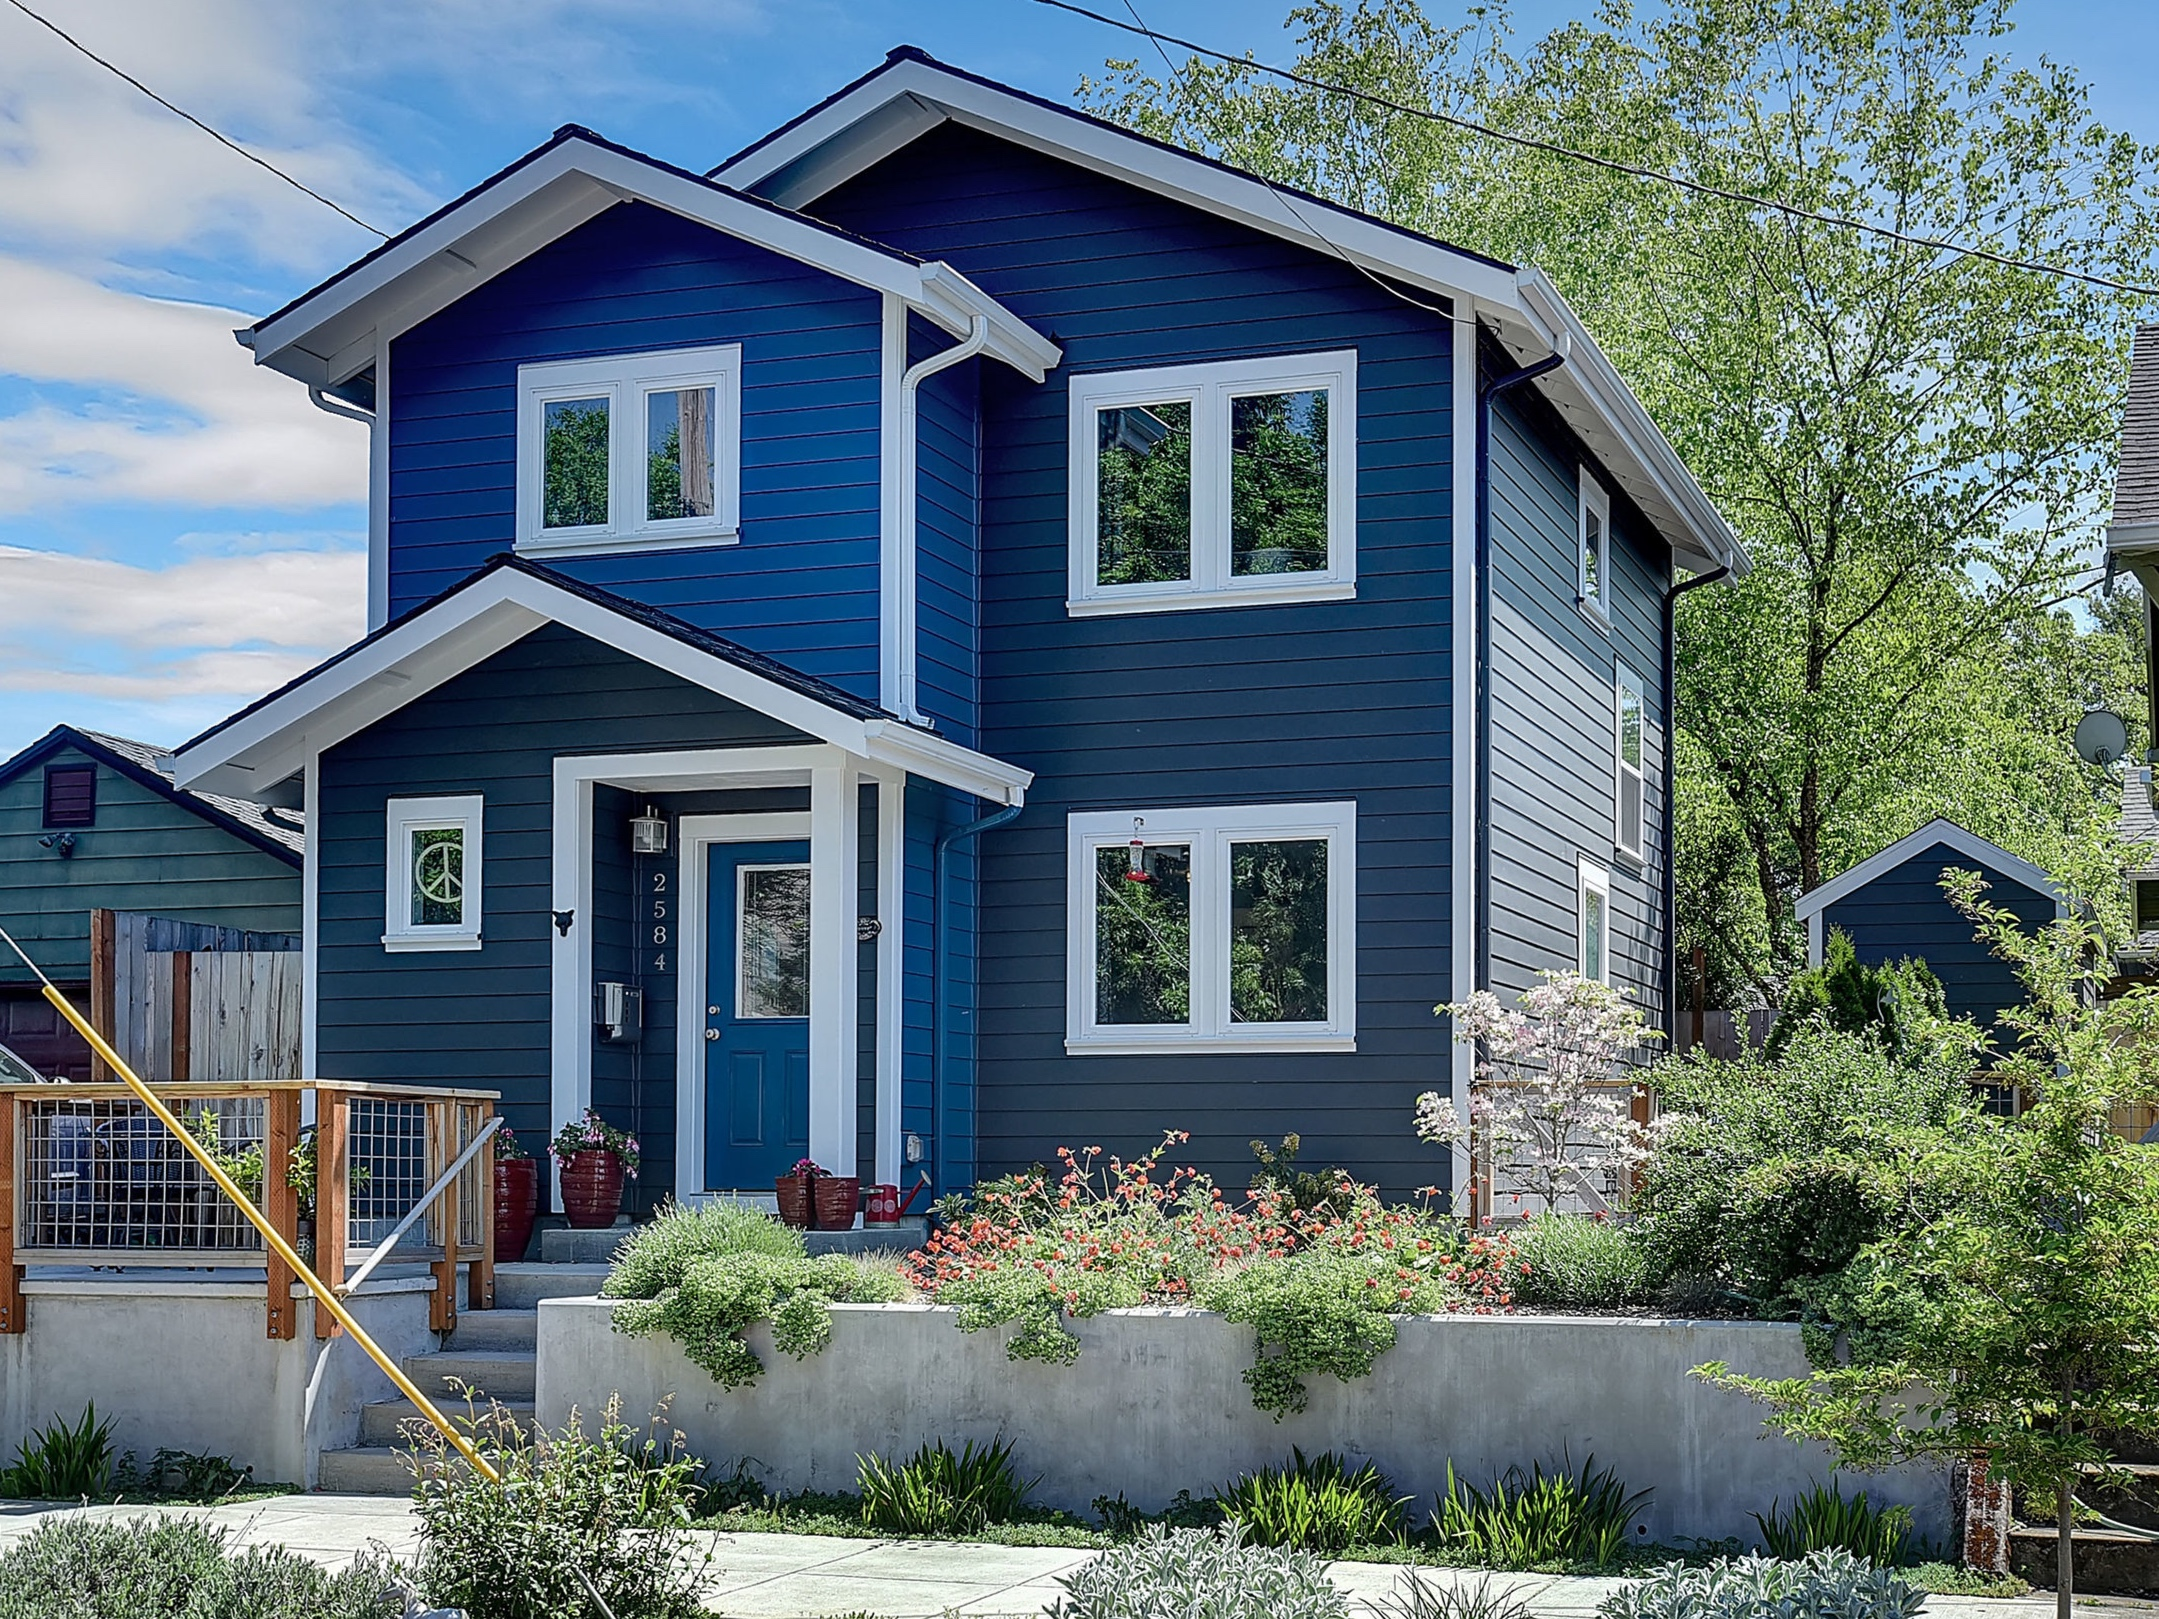 Overlook neighborhood. 2 bedrooms, 2 baths. Tons of storage. Featured in the 2019 ADU Tour on June 22 in Portland, OR. https://accessorydwellings.org/adu_tour/